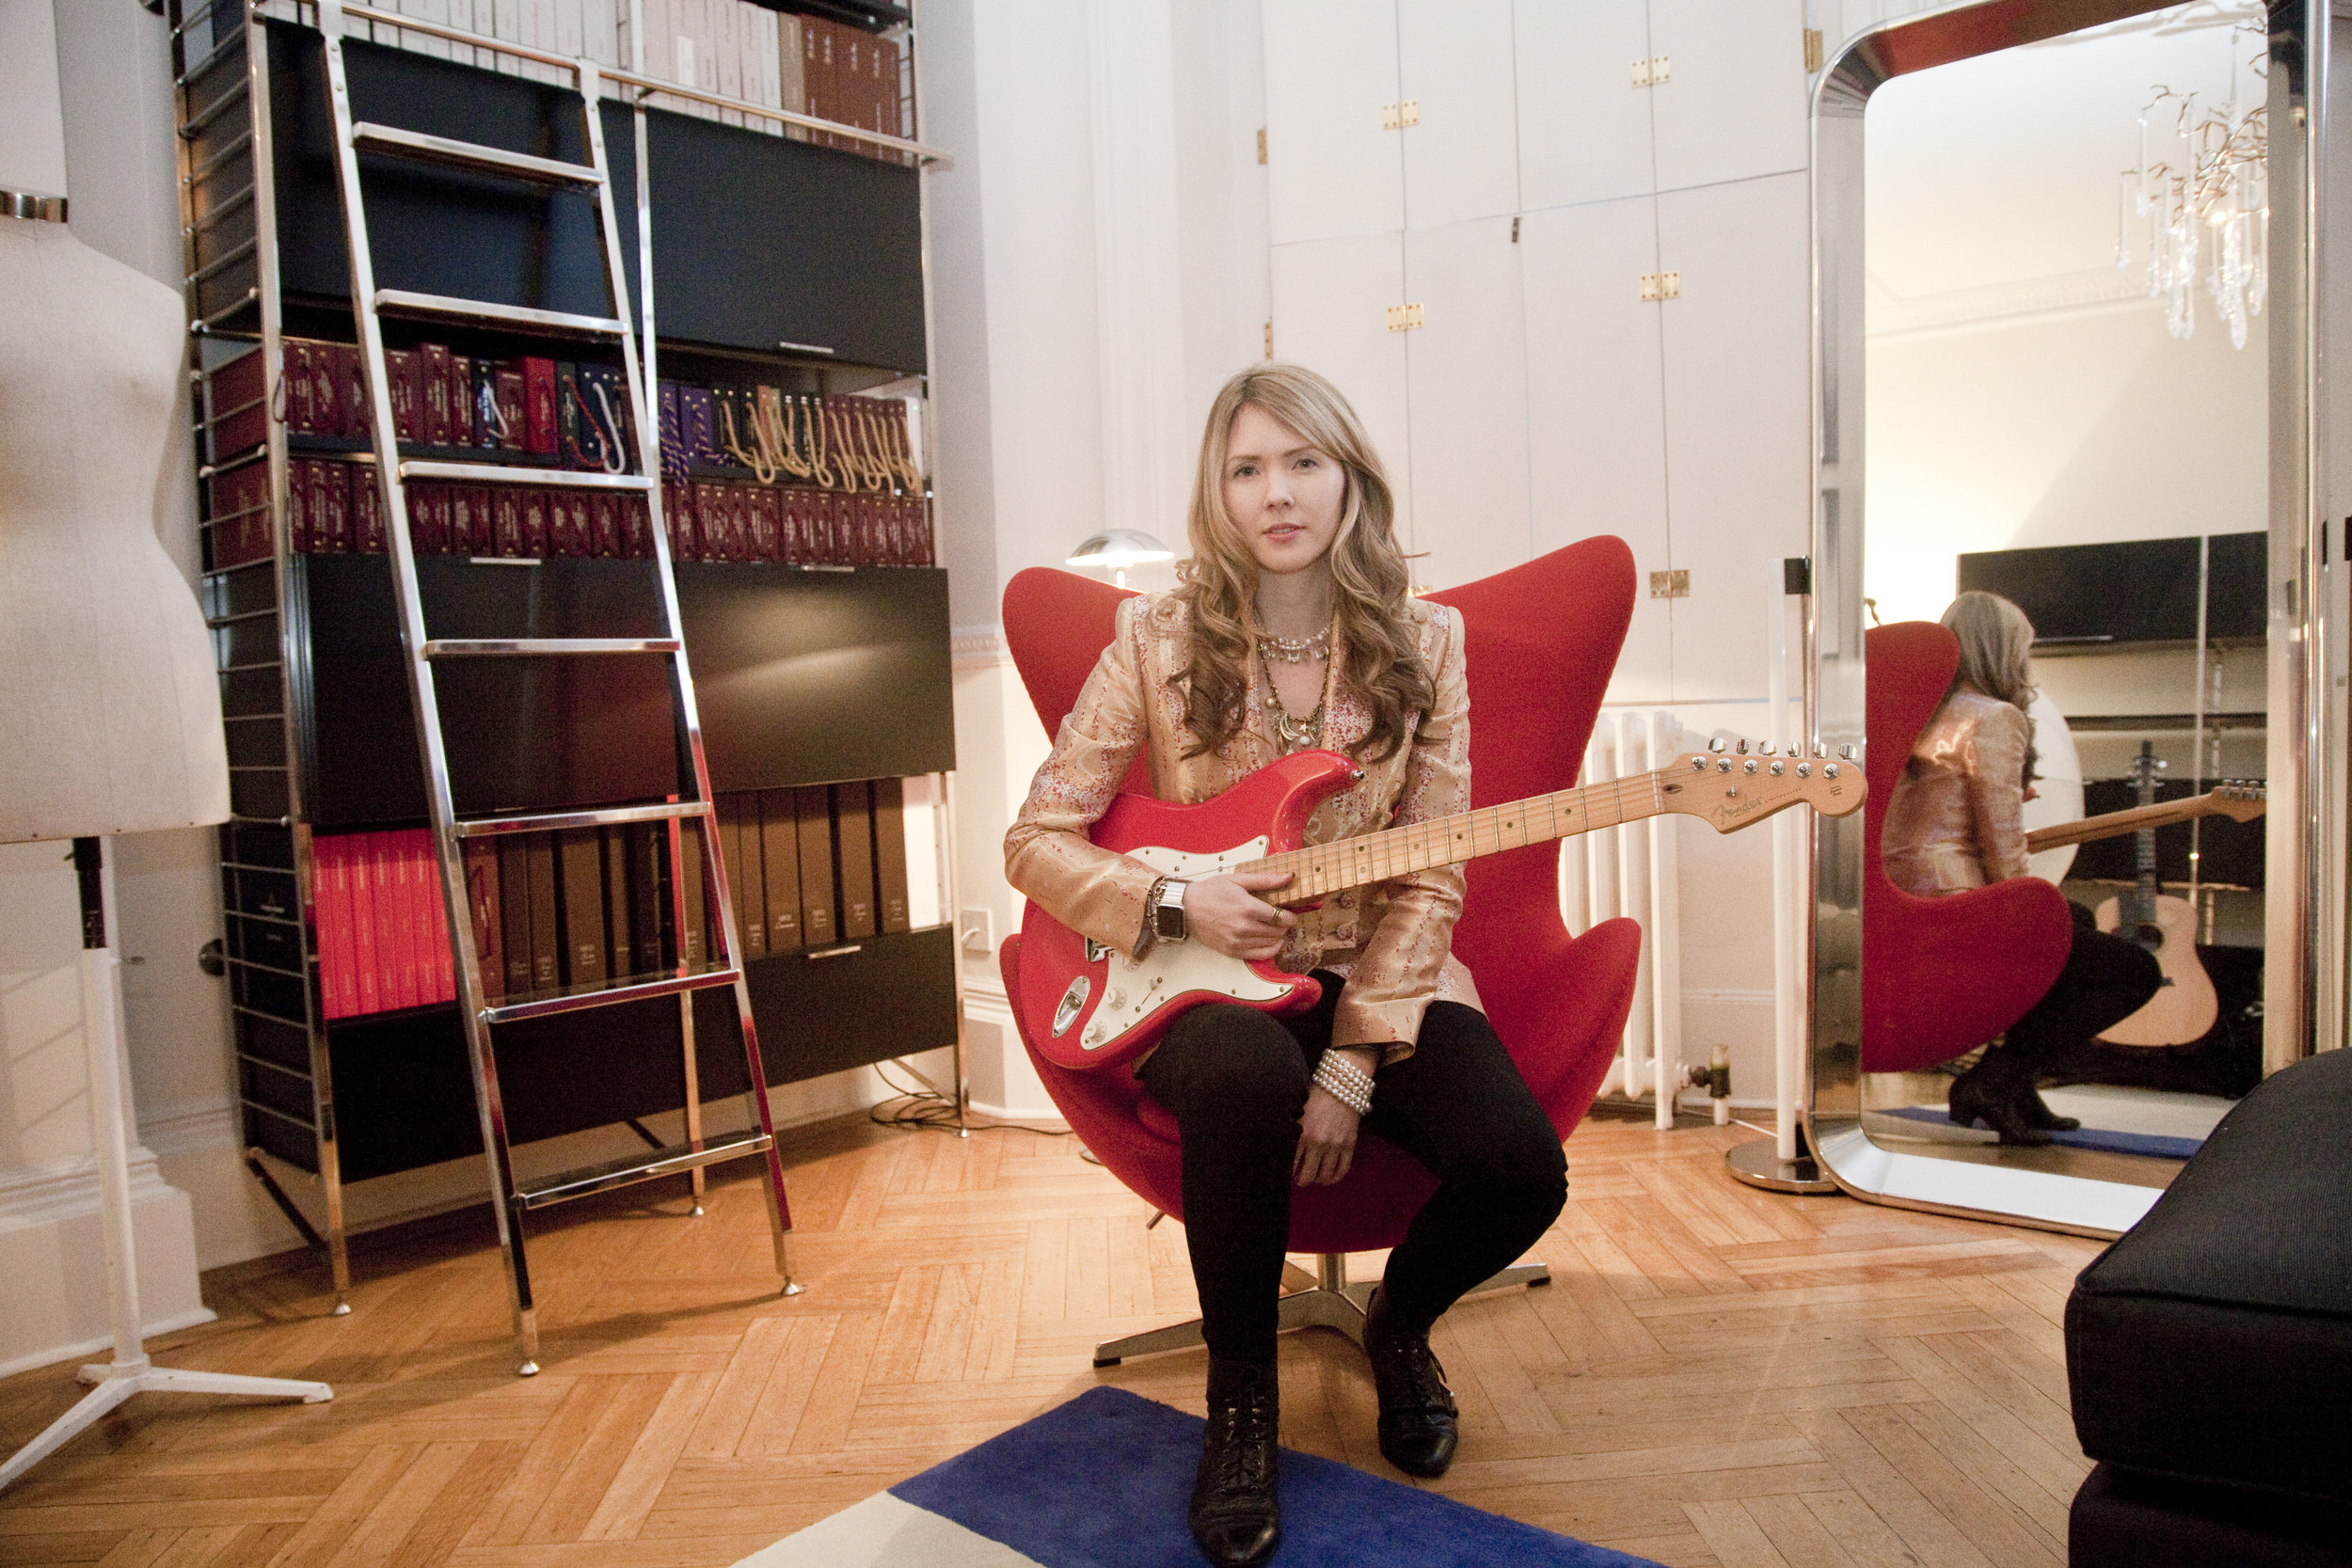 Beatie Wolfe - 2015 Montagu Square - in her musical jacket inside 34 Montagu Square by Ollie Smallwood (1)